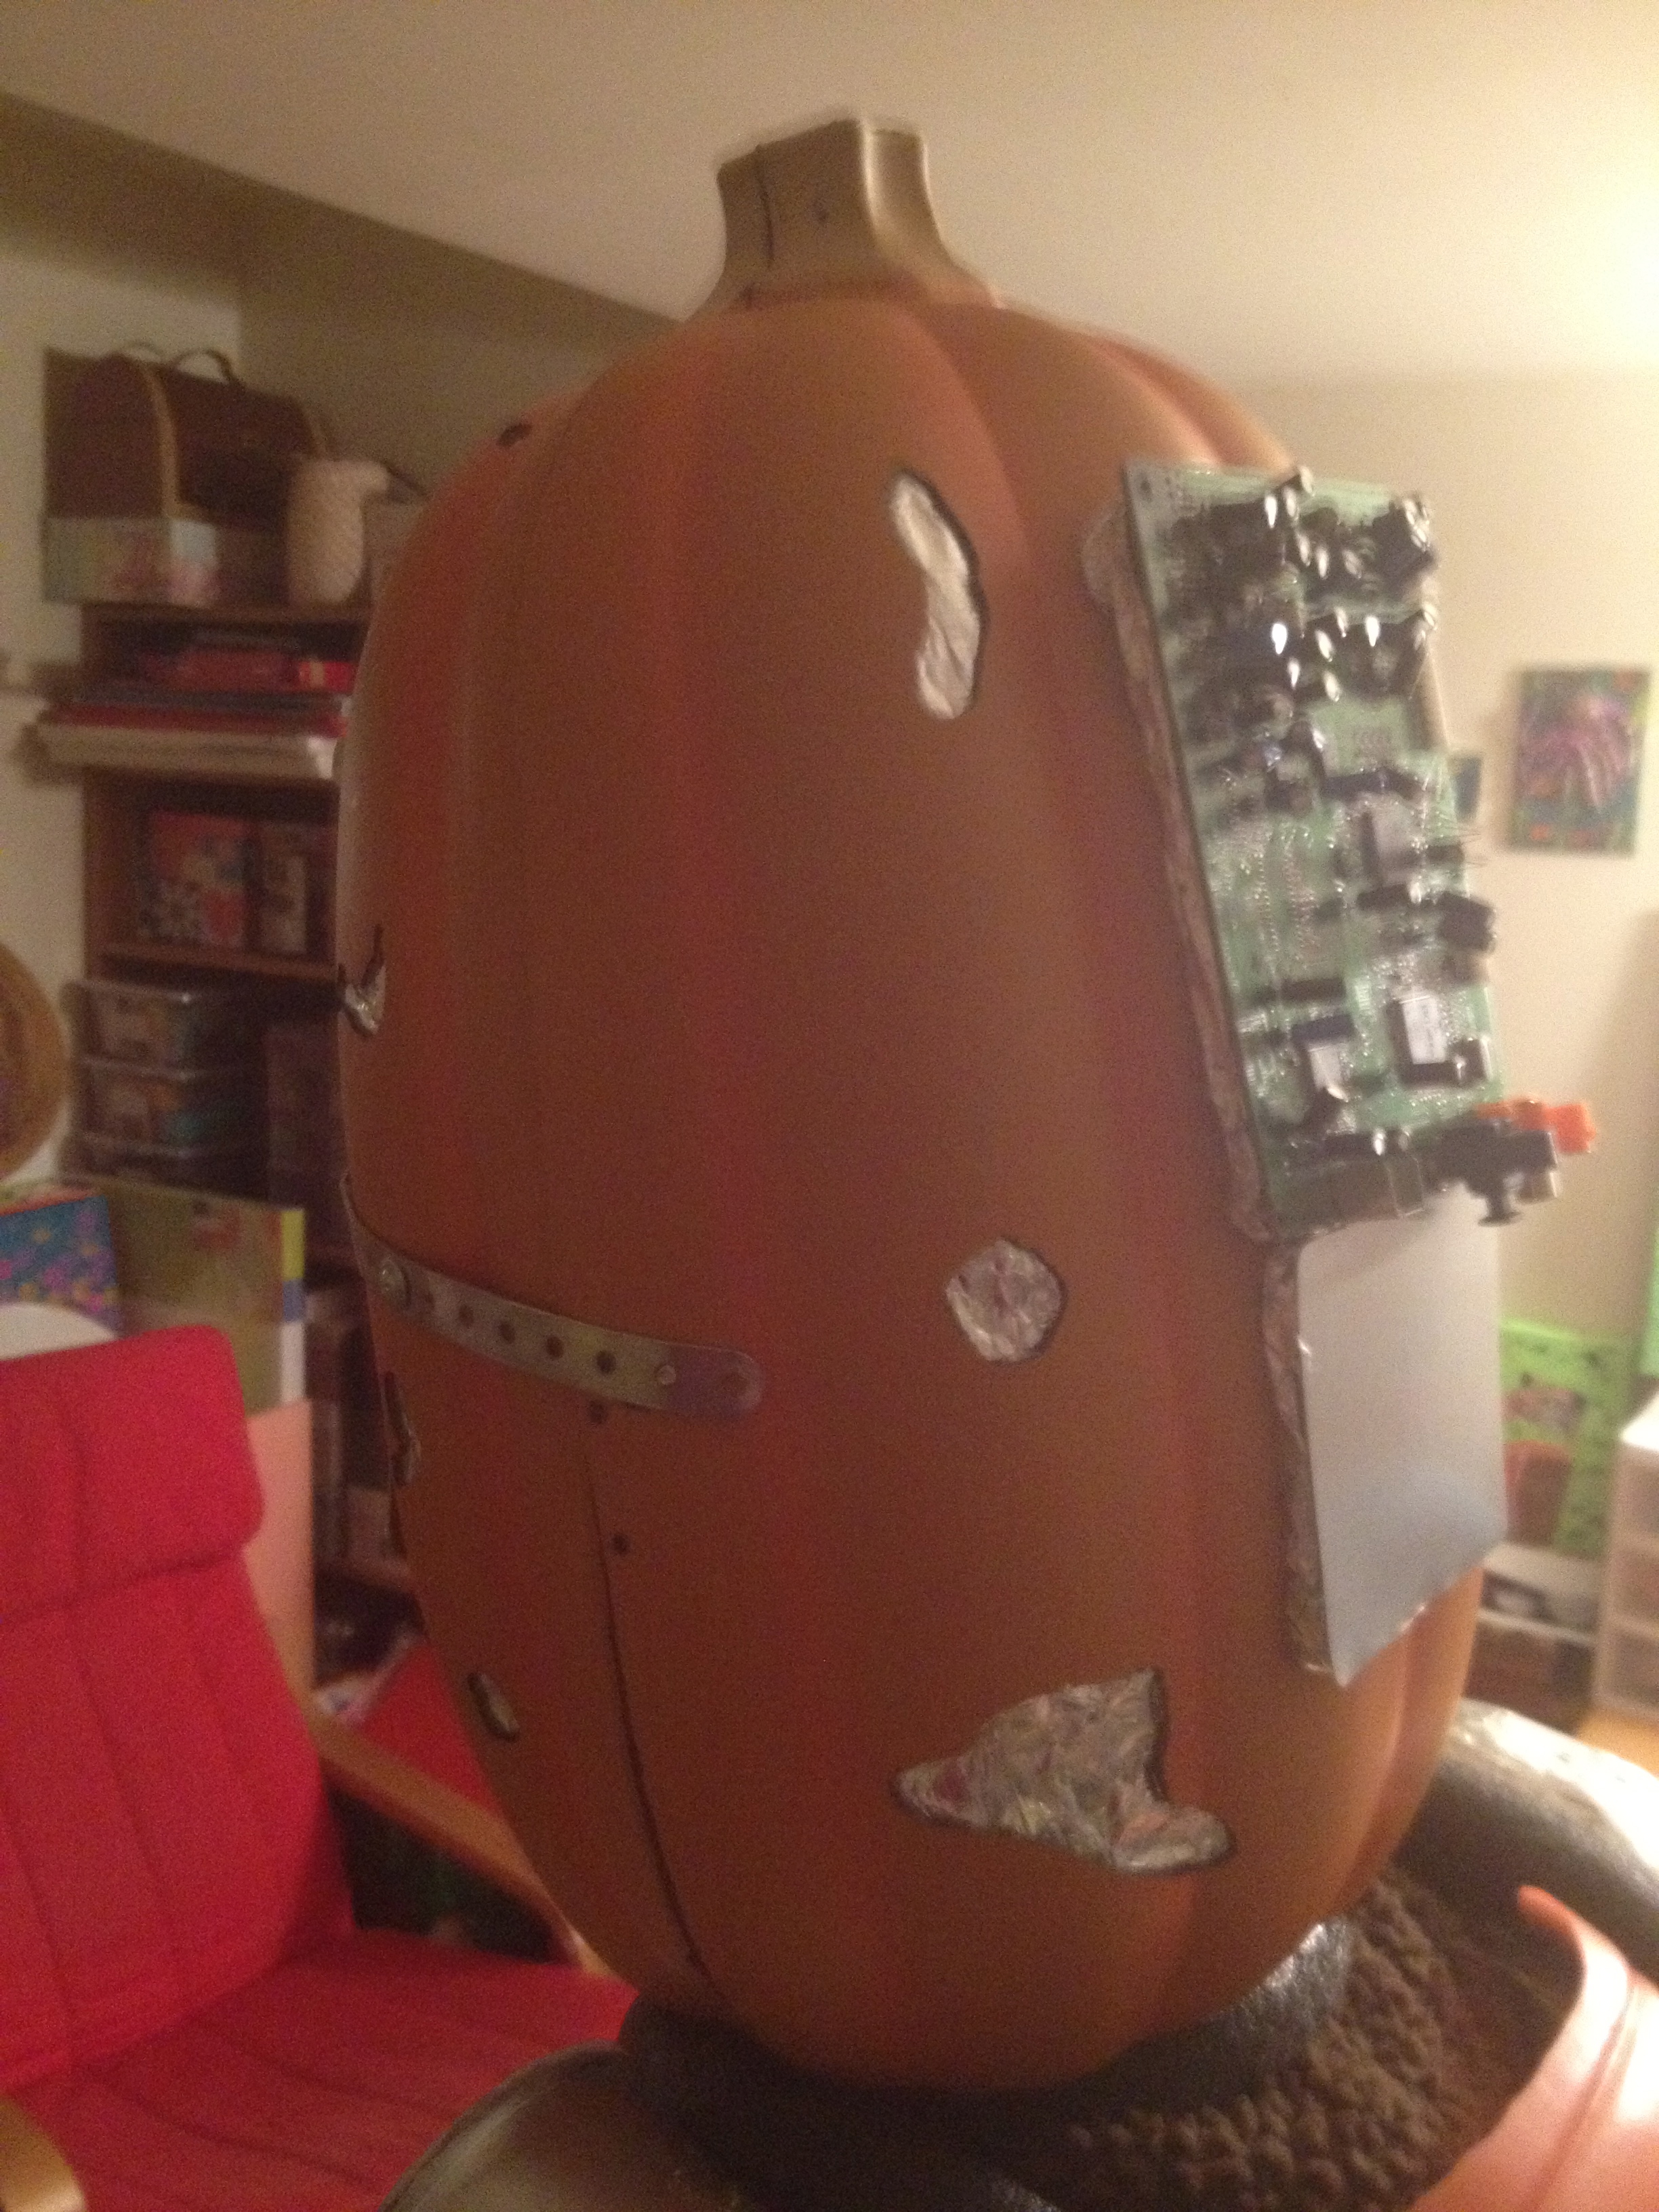 Picture of The Pumpkin Head: Judgment Day